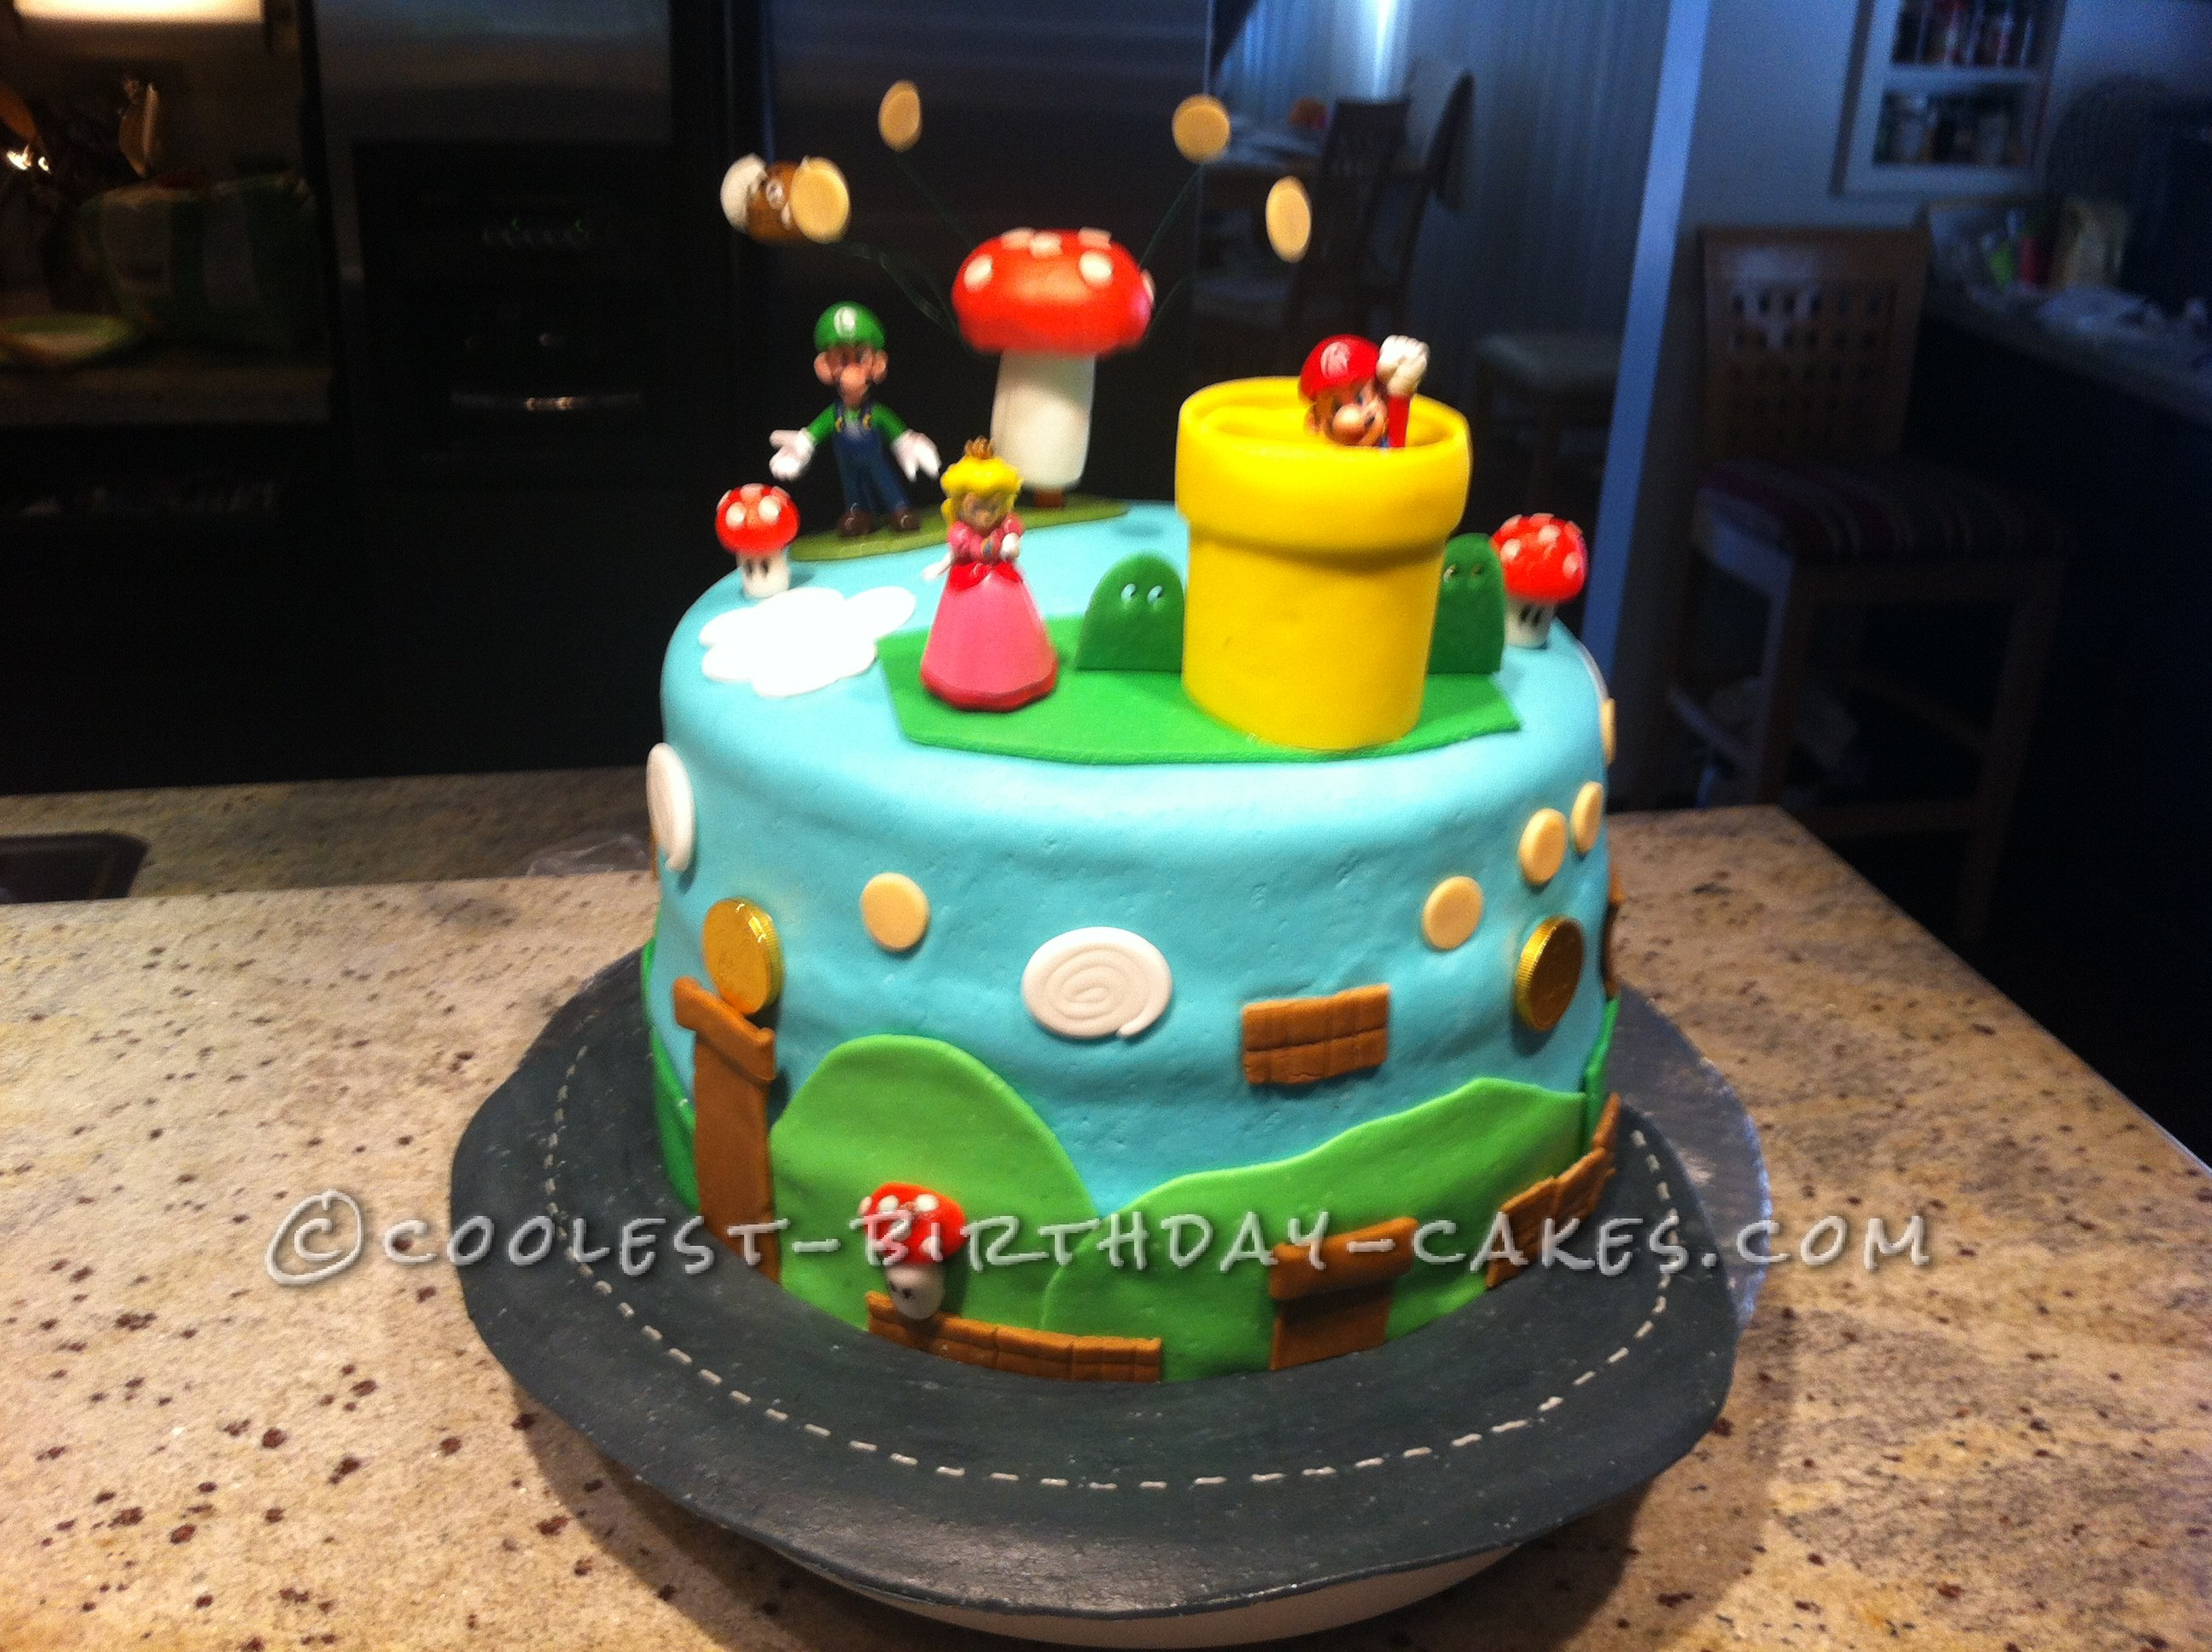 For This Animated Mario Brothers Cake I Had To Purchase 2 Pans 10X 3 1 Box Of Mix Per Pan Layers High One White And Two Chocolate